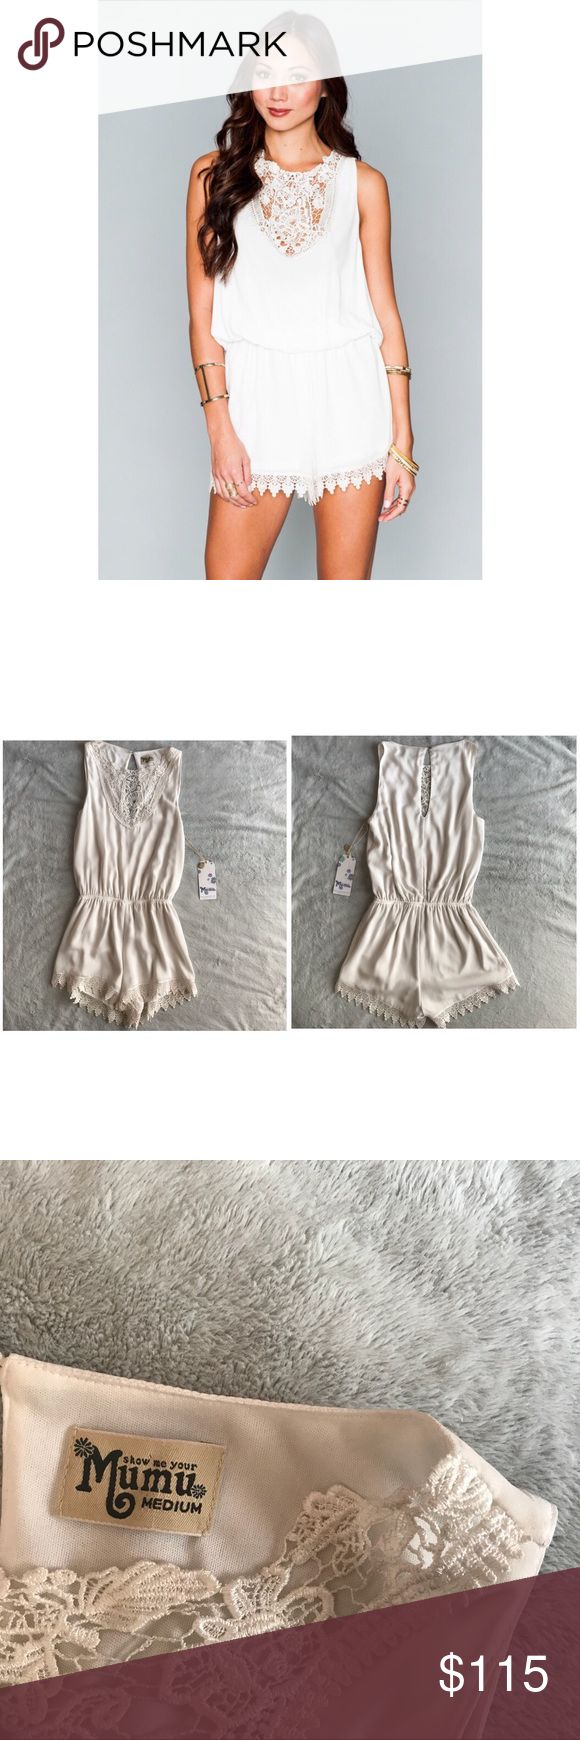 NWT Show Me Your Mumu Lace Face Romper Ivory Crisp Brand new, never worn. Lace Face Romper by Show Me Your Mumu in Ivory Crisp. Shorts and tank romper with gorgeous scalloped lace trim on the neckline and shorts hem. Perfect for vacation or a bridal event. Keyhole detailing at back neckline with shell button closure. Elastic waist allows for some stretch. Note: this has been tried on & stored, w/ faint marks near the back button and underarms, see photos. Size medium, see photos for…